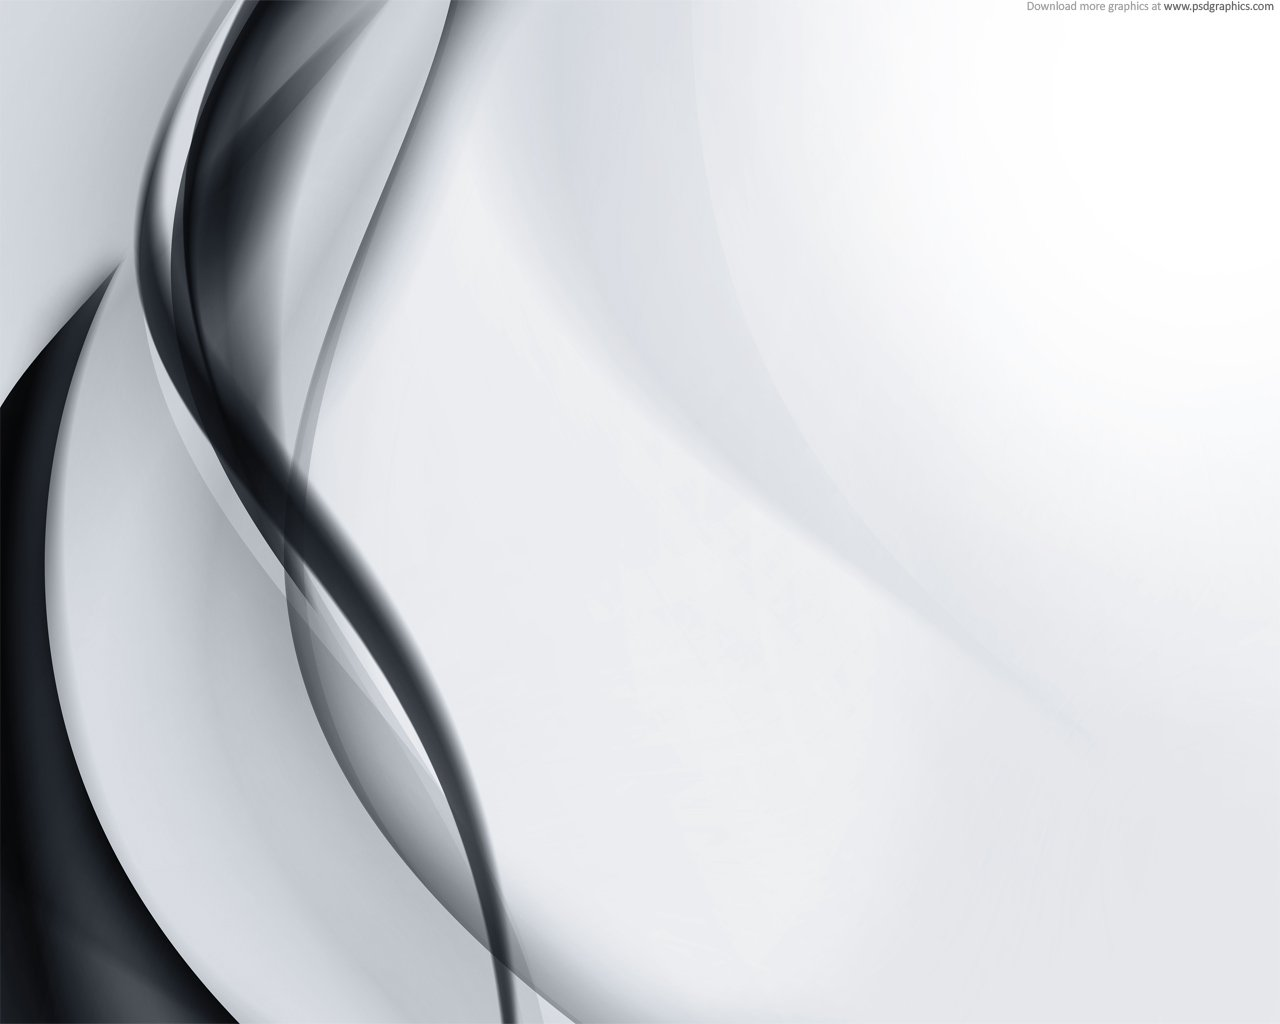 Black And White Background Design Images amp Pictures   Becuo 1280x1024